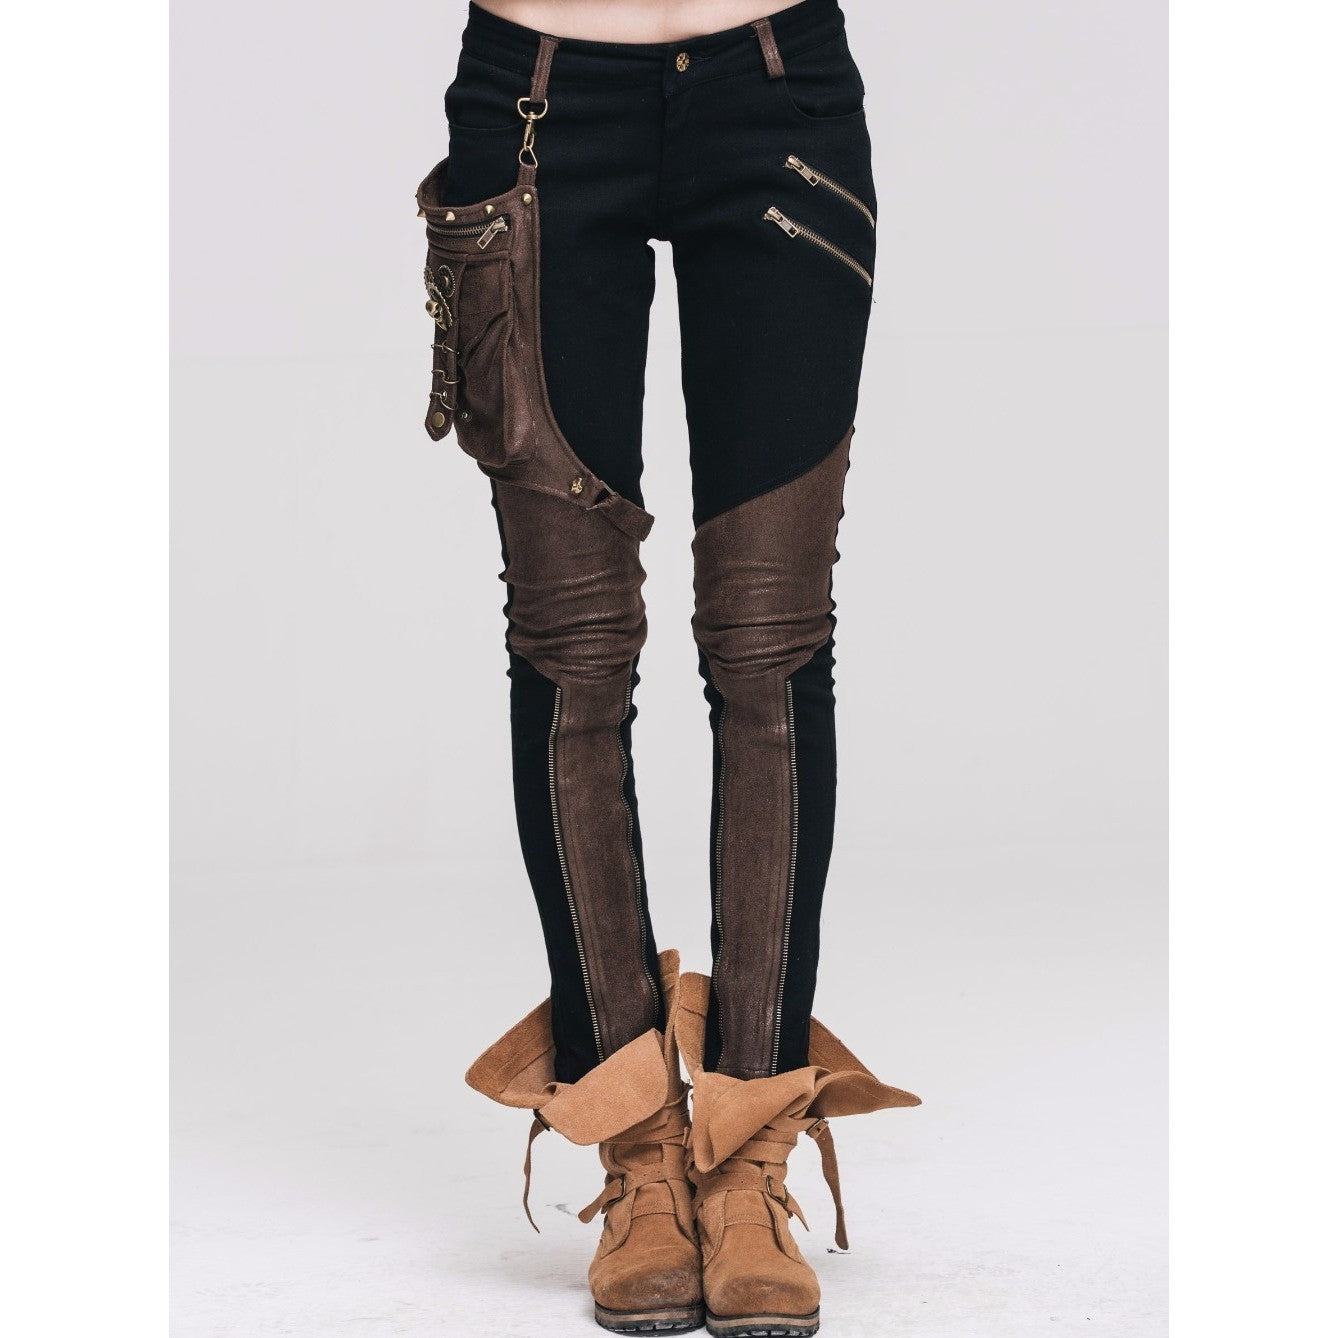 Skinny Pants with Hip Belt Holster-More Colors